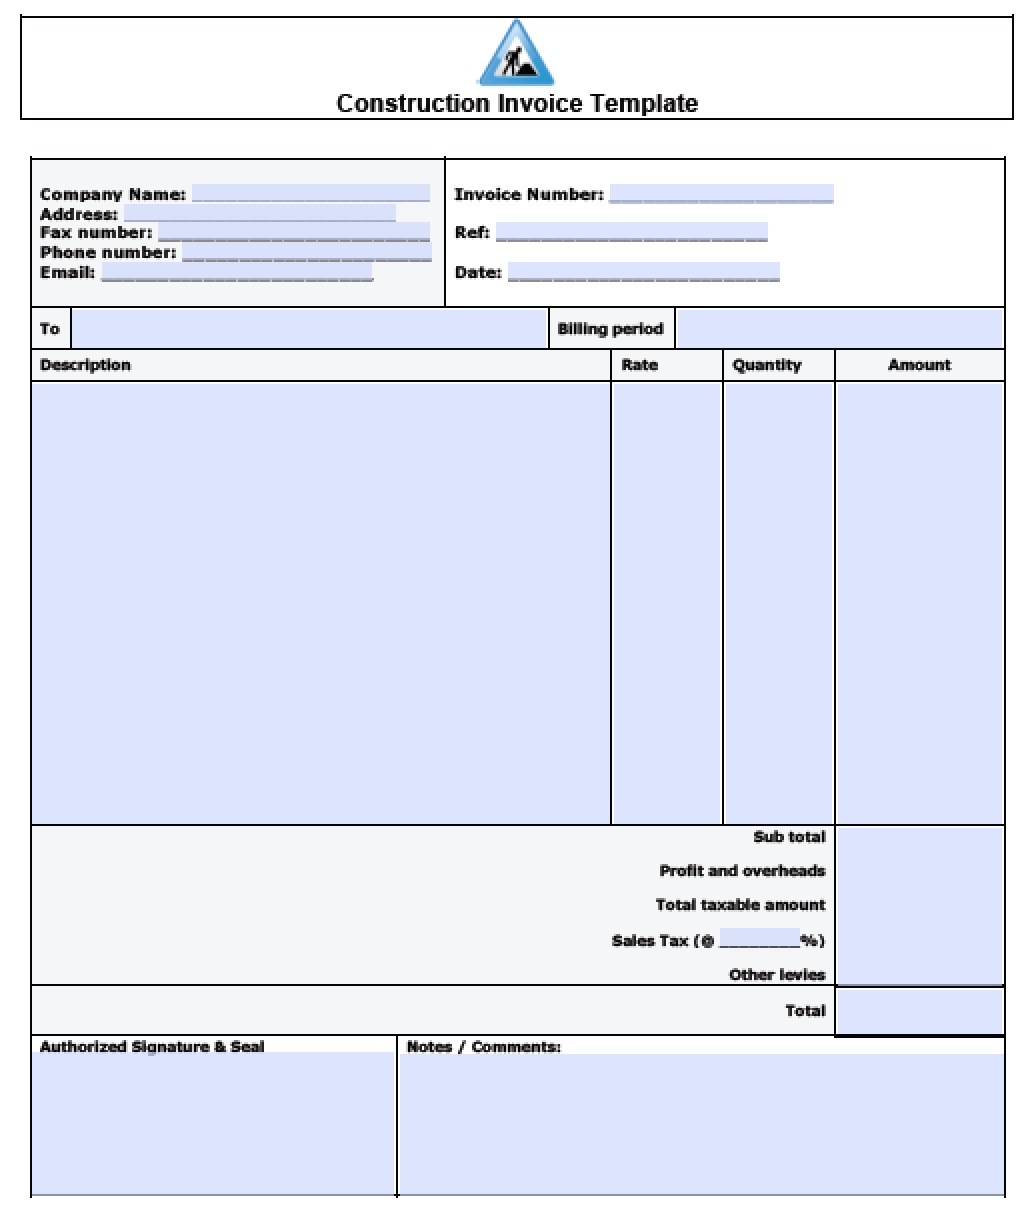 Free Construction Invoice Template Excel PDF Word Doc - Invoice template for builders